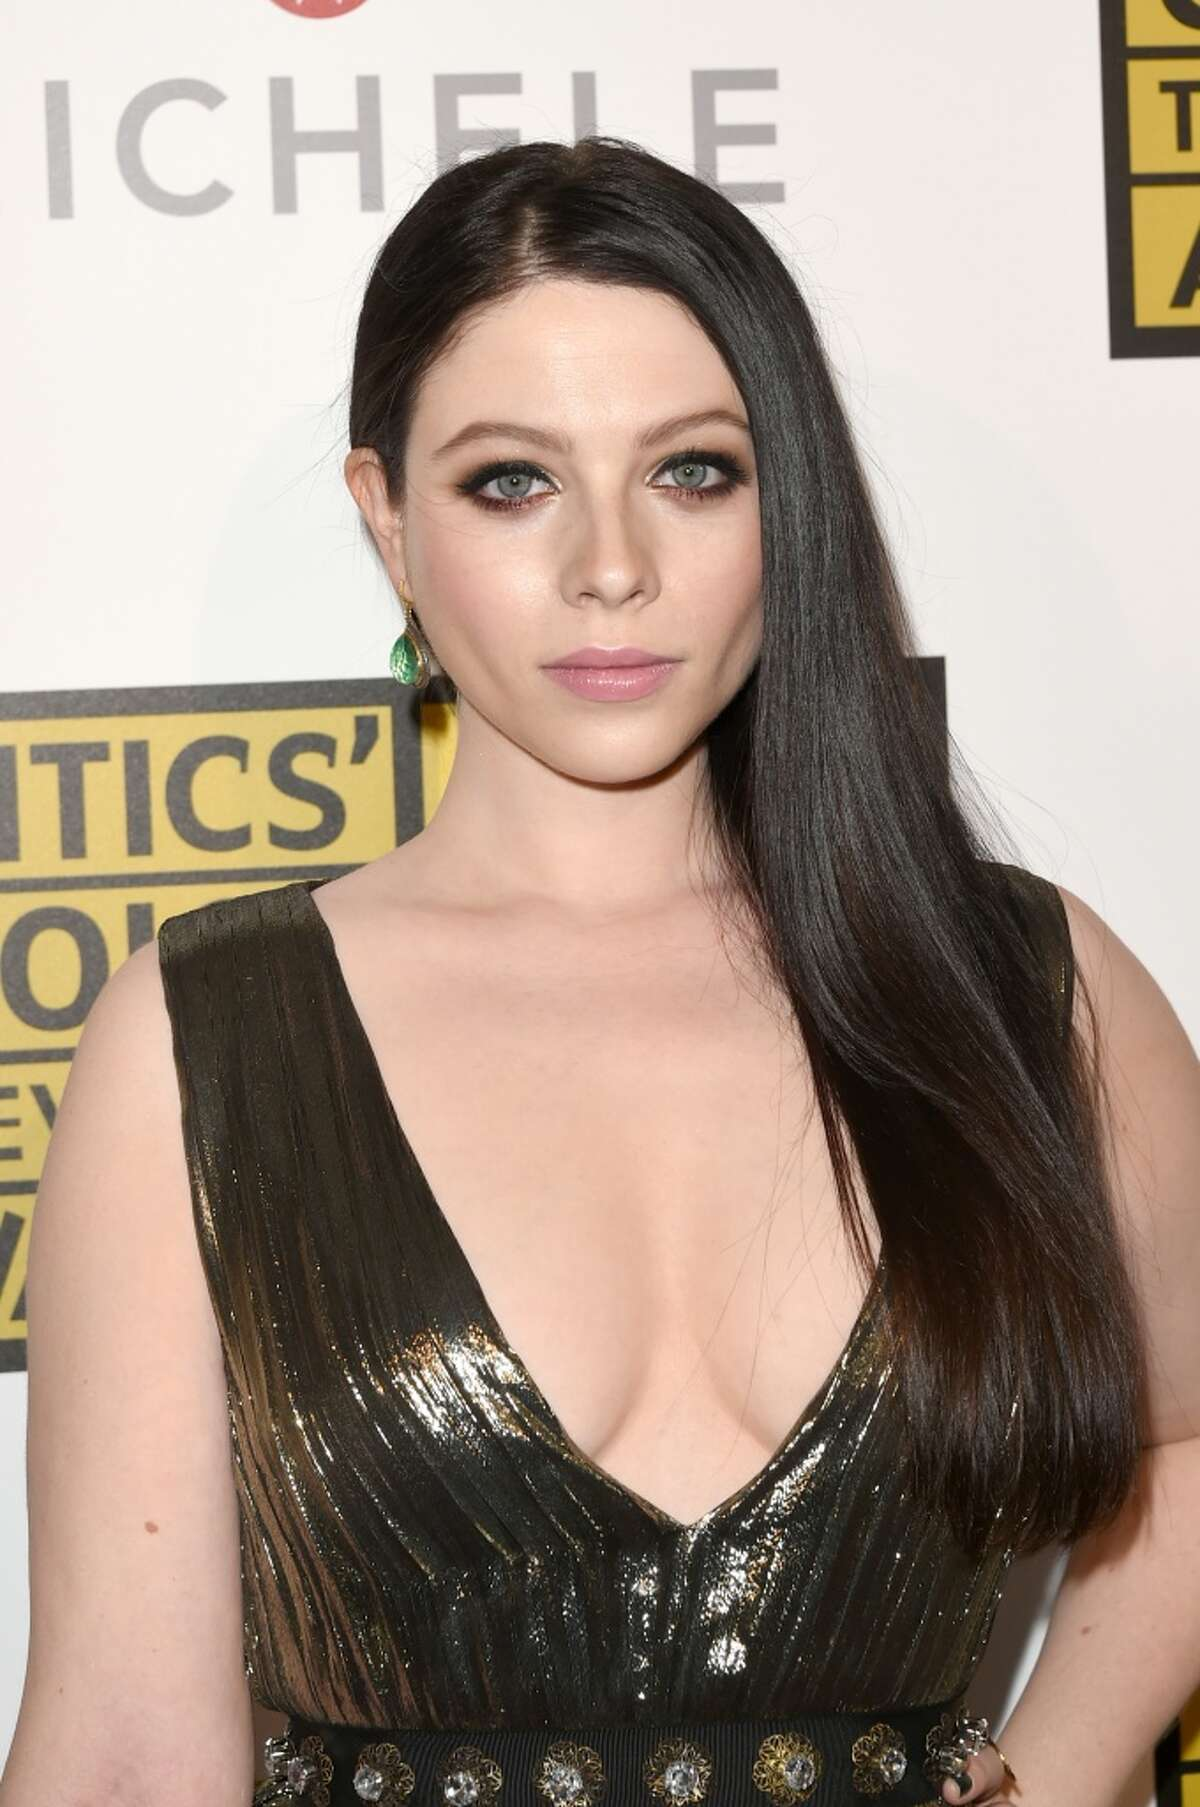 As of Oct. 21, 2016, Michelle Trachtenberg ranked No. 1 among New York actors on IMDB's StarMeter, which measures